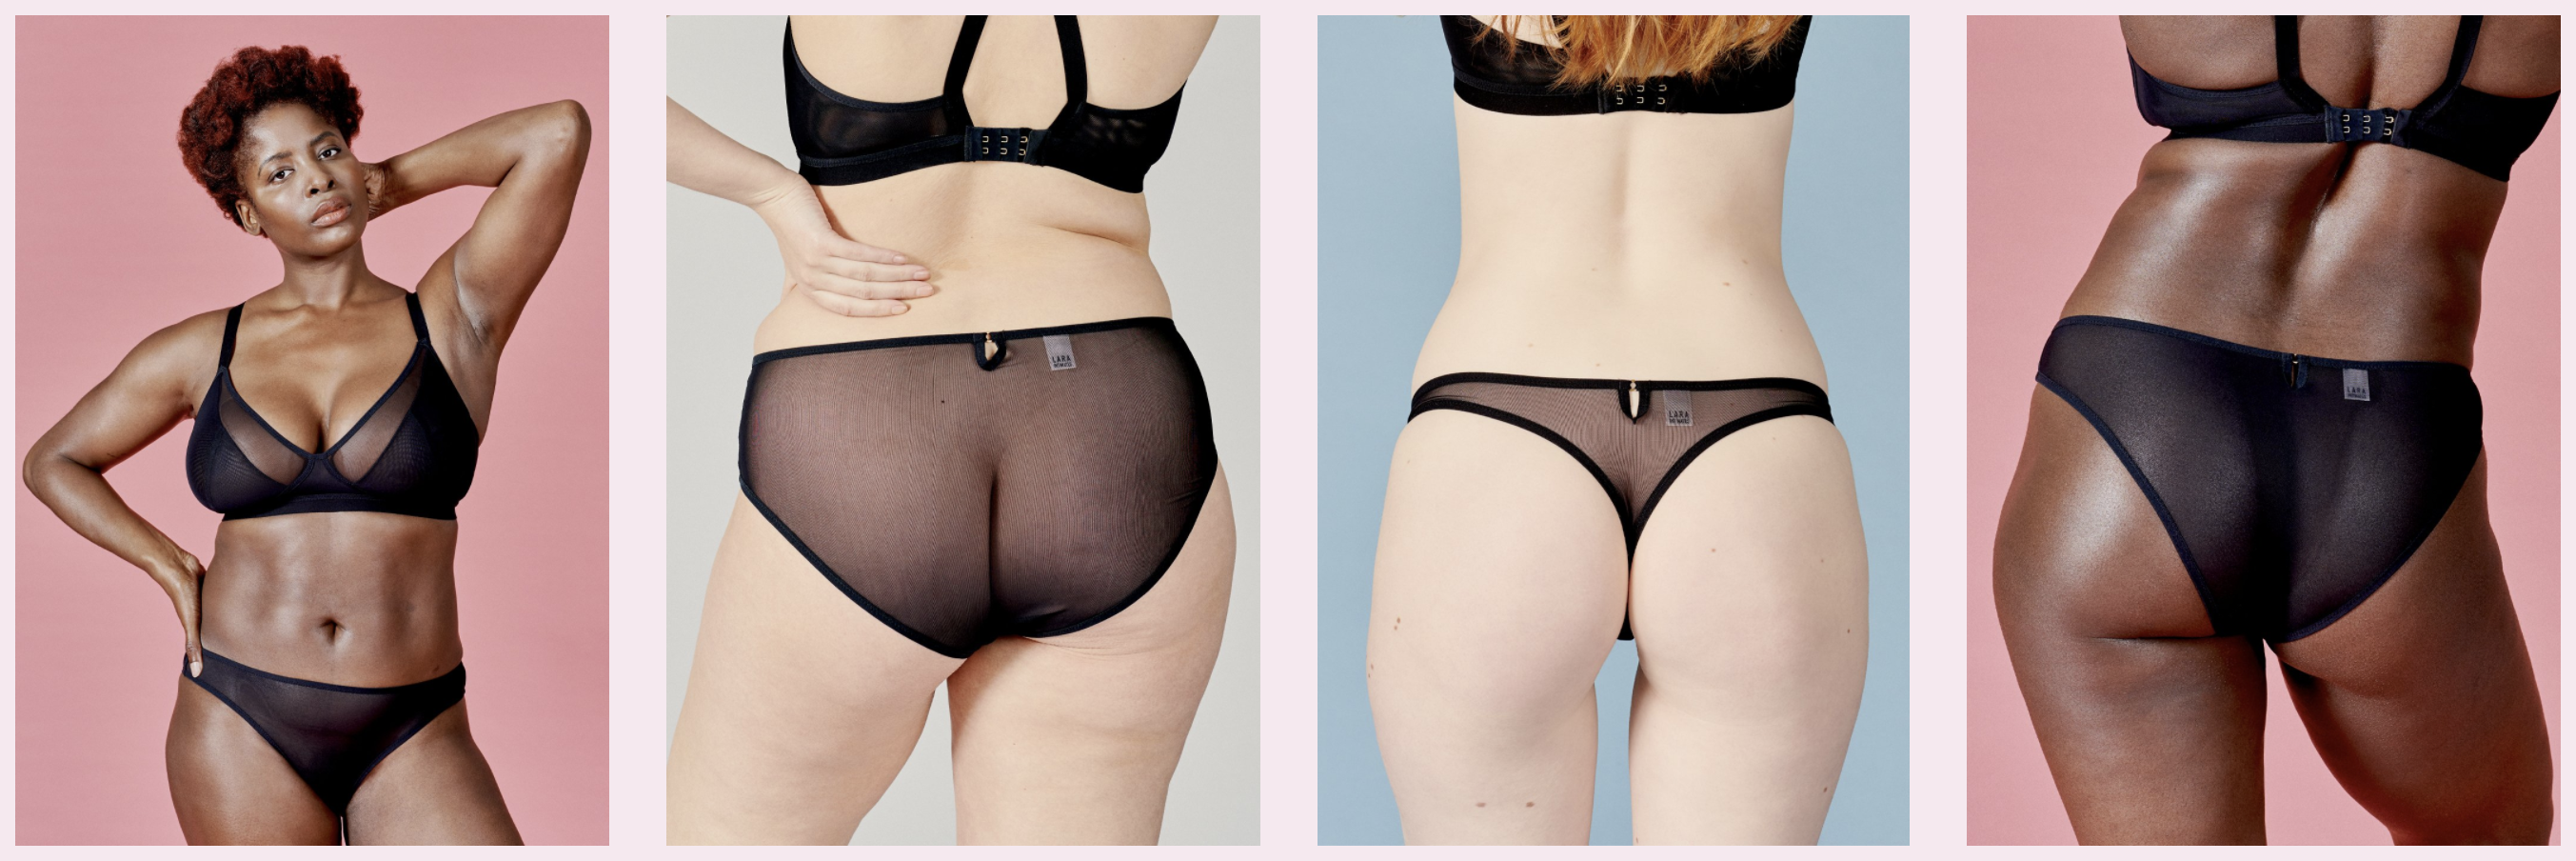 Looking for the best affordable ethical underwear? Look no further! This is your most comprehensive guide that will tell you about all of the ethical and sustainable options out there that are $25 USD or less. I'll also tell you about where to find ethical lingerie sets and ethical men's underwear. Big bonus: tips on the best ethical underwear for your period! Human of Impact | humanofimpact.org